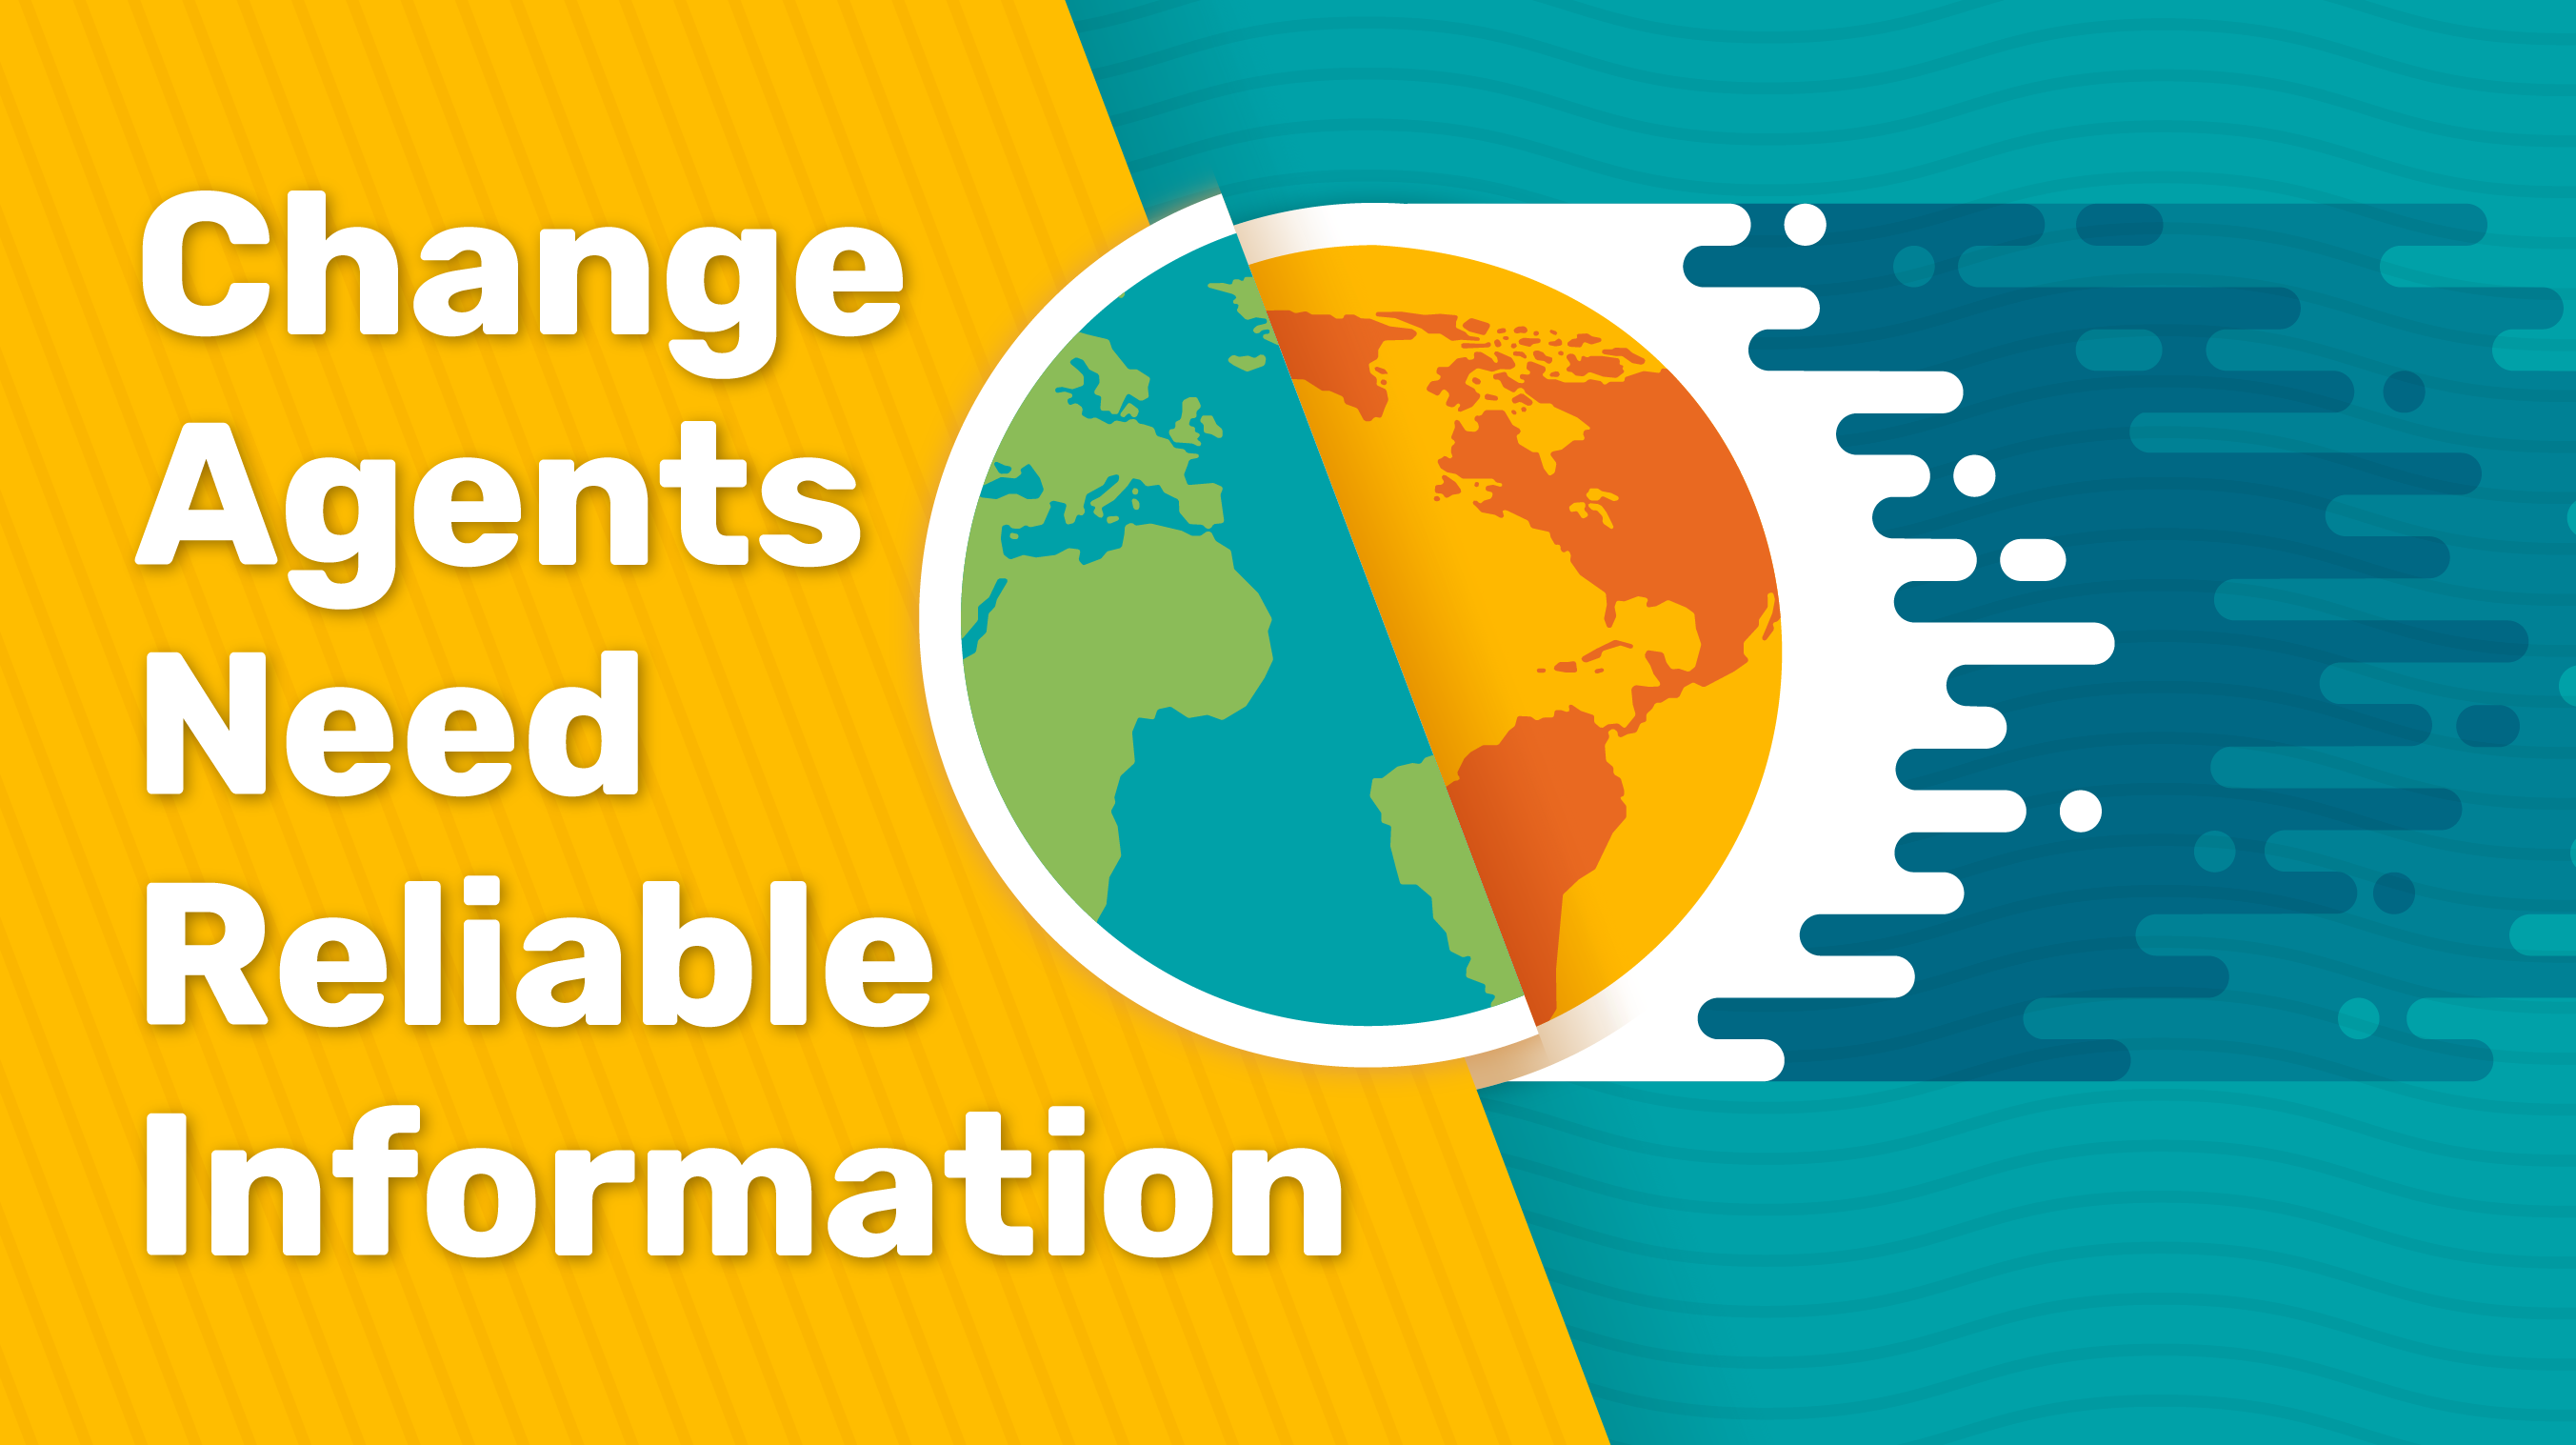 Change Agents Need Reliable Information